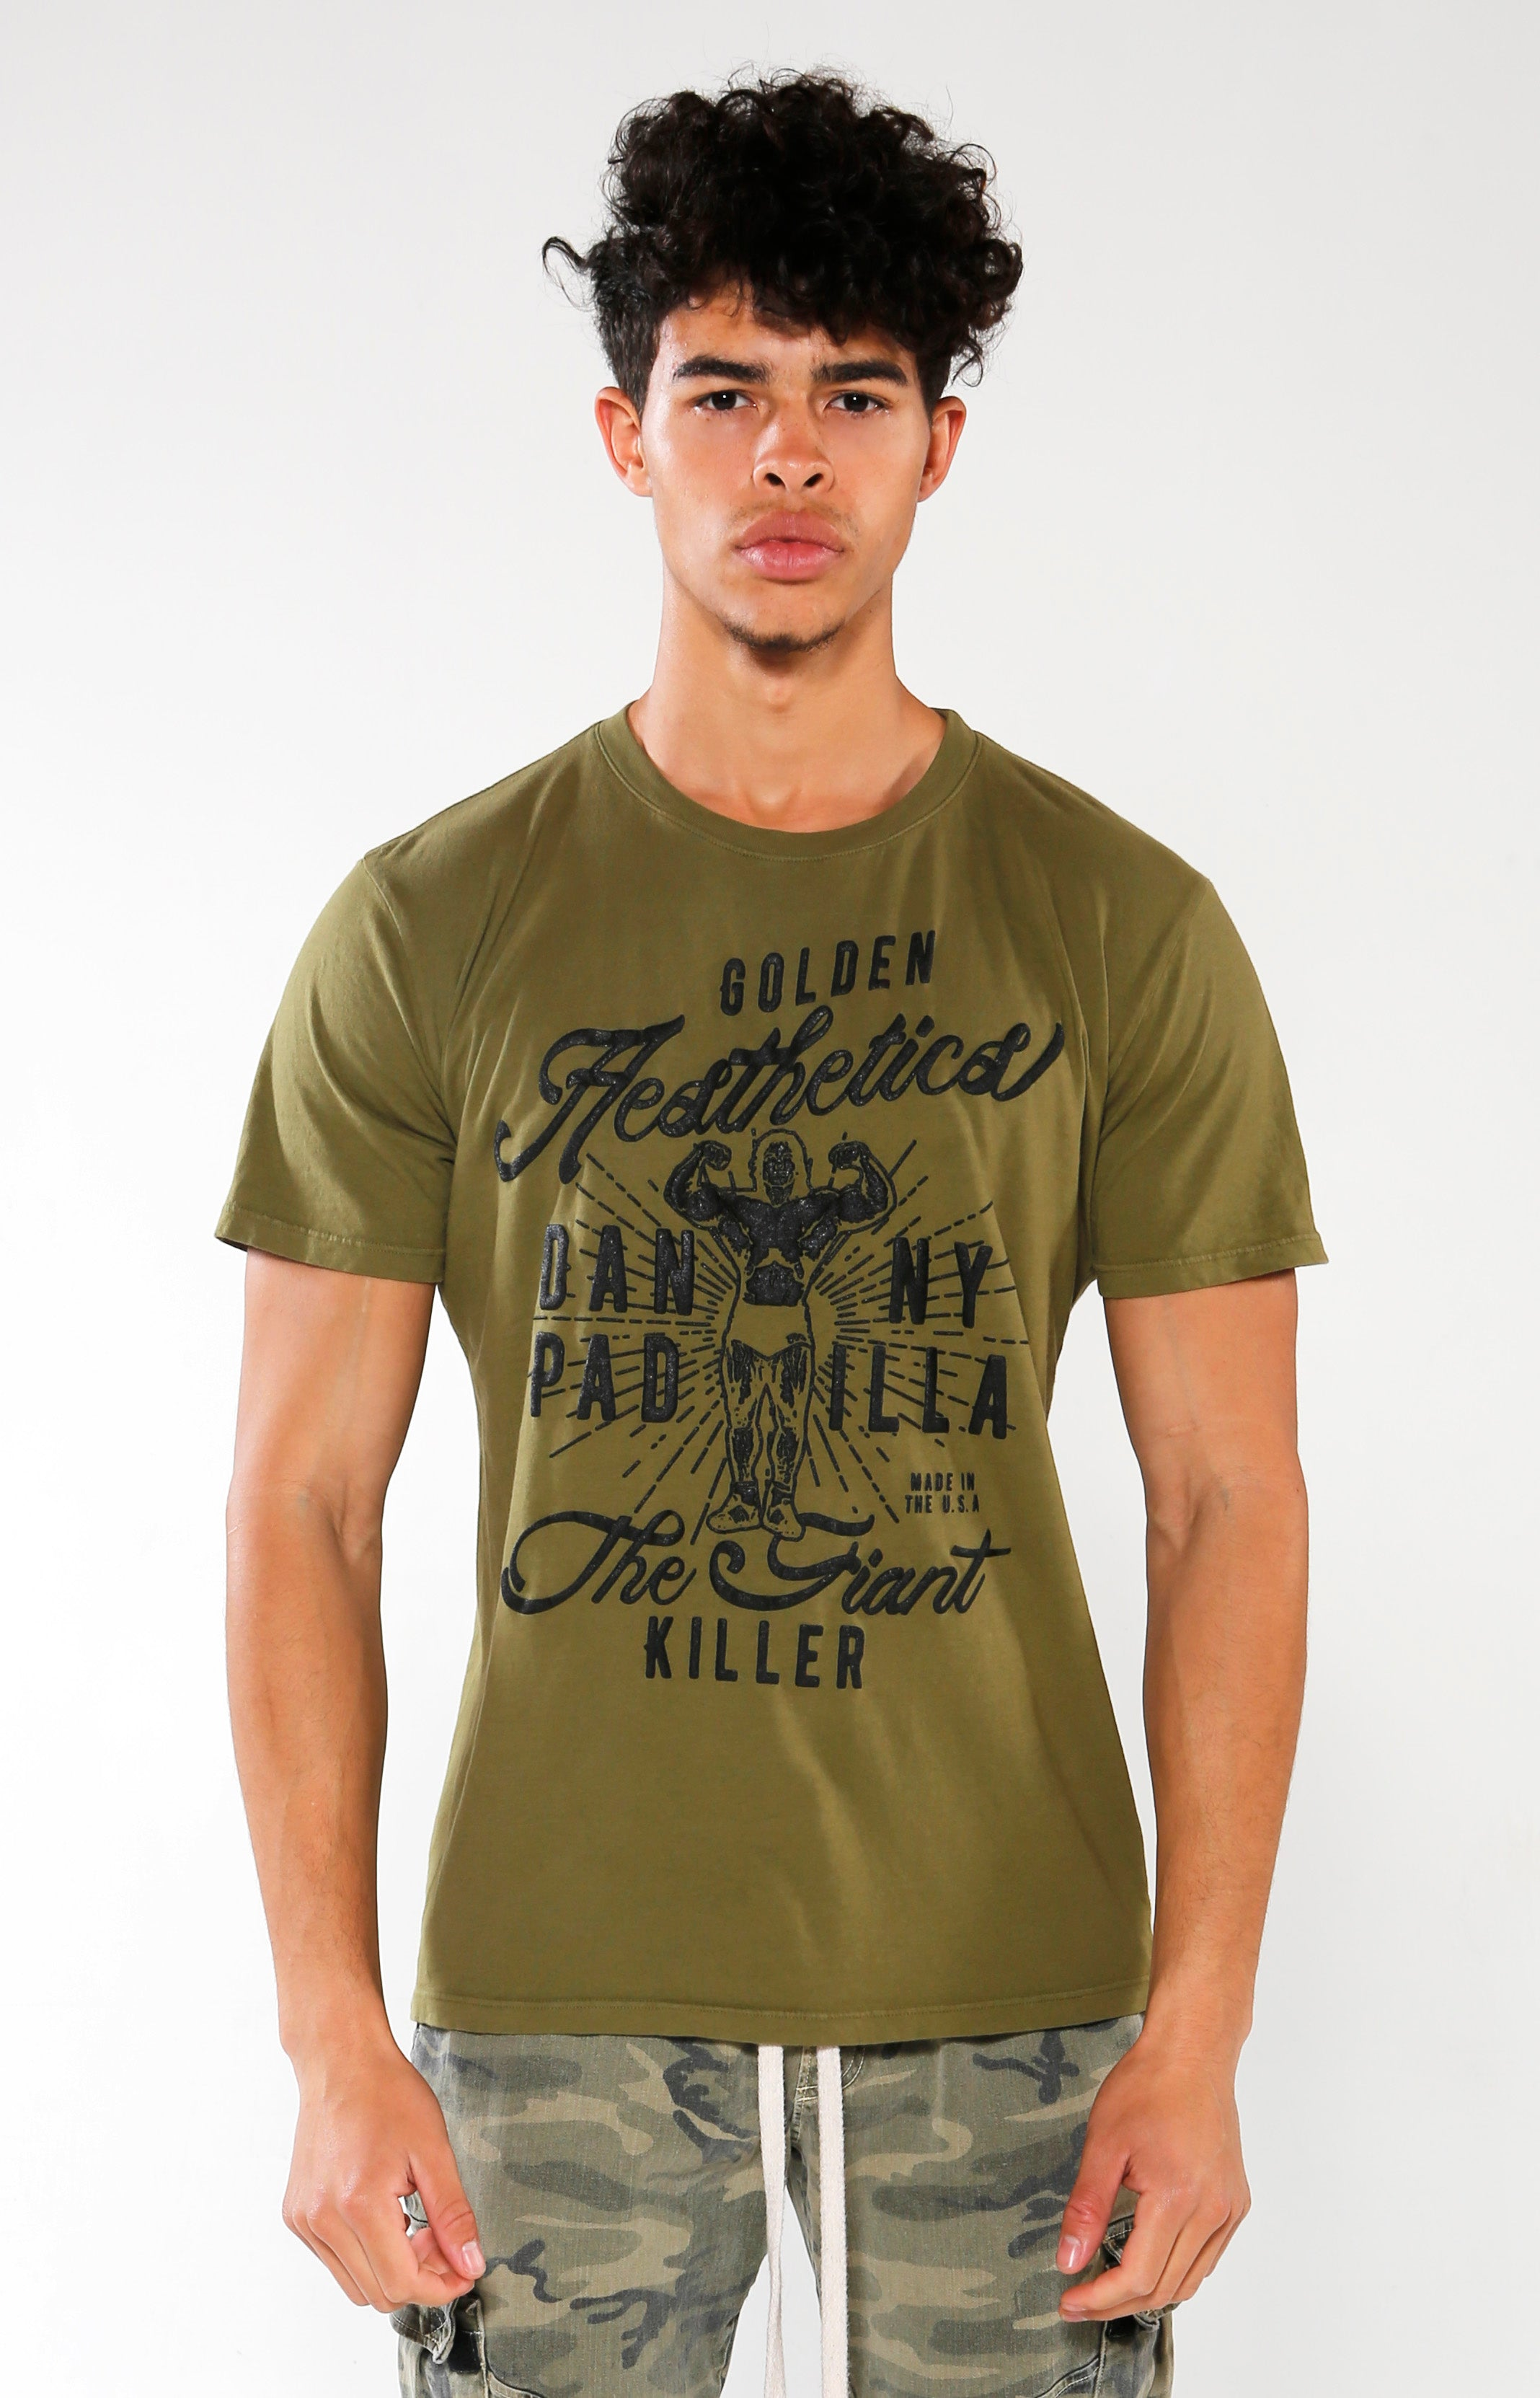 Men's Old School Legends Danny Padilla T-Shirt | Golden Aesthetics - Golden Aesthetics